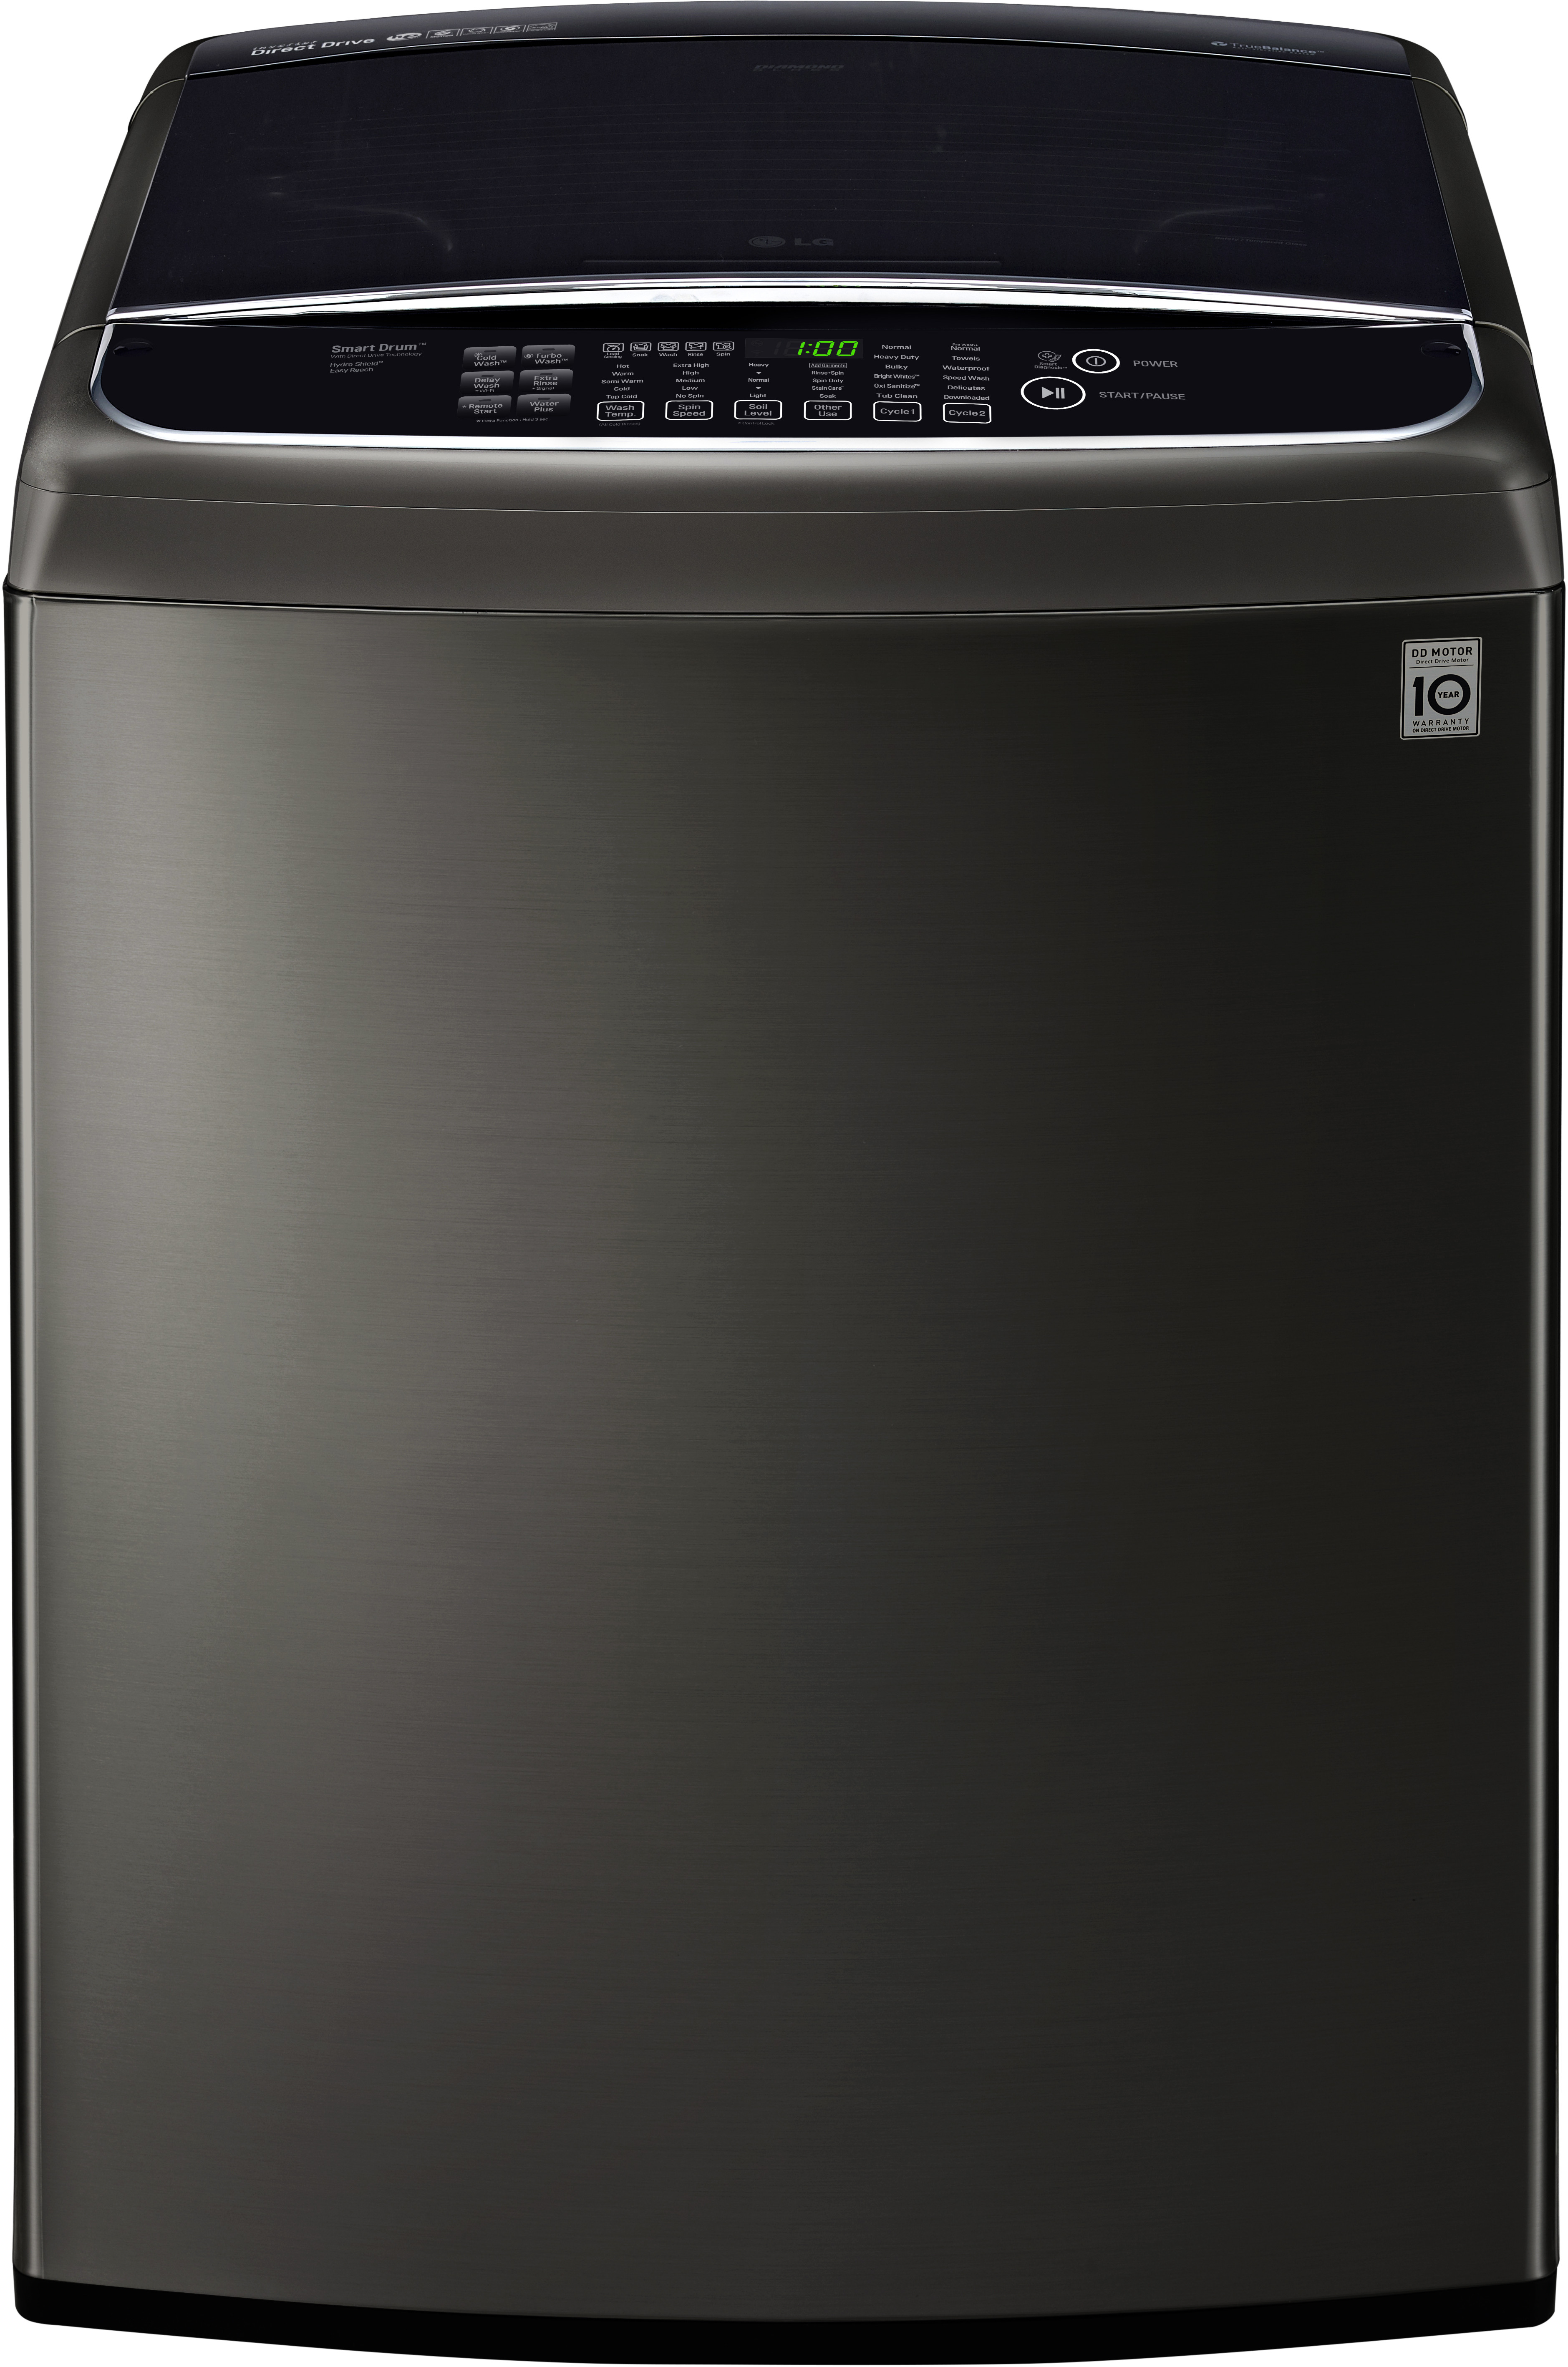 Lg Wt1901ck 27 Inch Top Load Washer With Turbowash 174 Slam